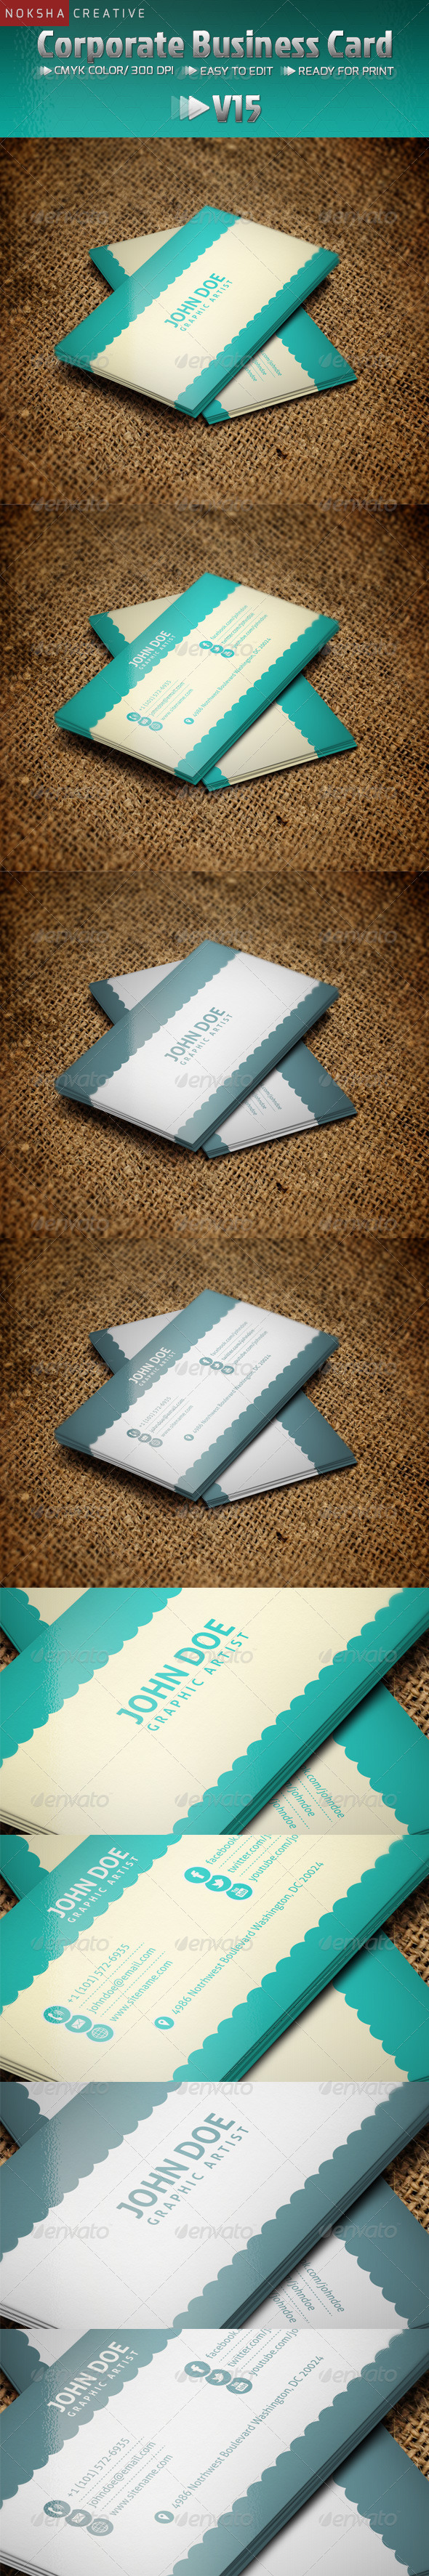 Corporate Business Card V15 - Business Cards Print Templates